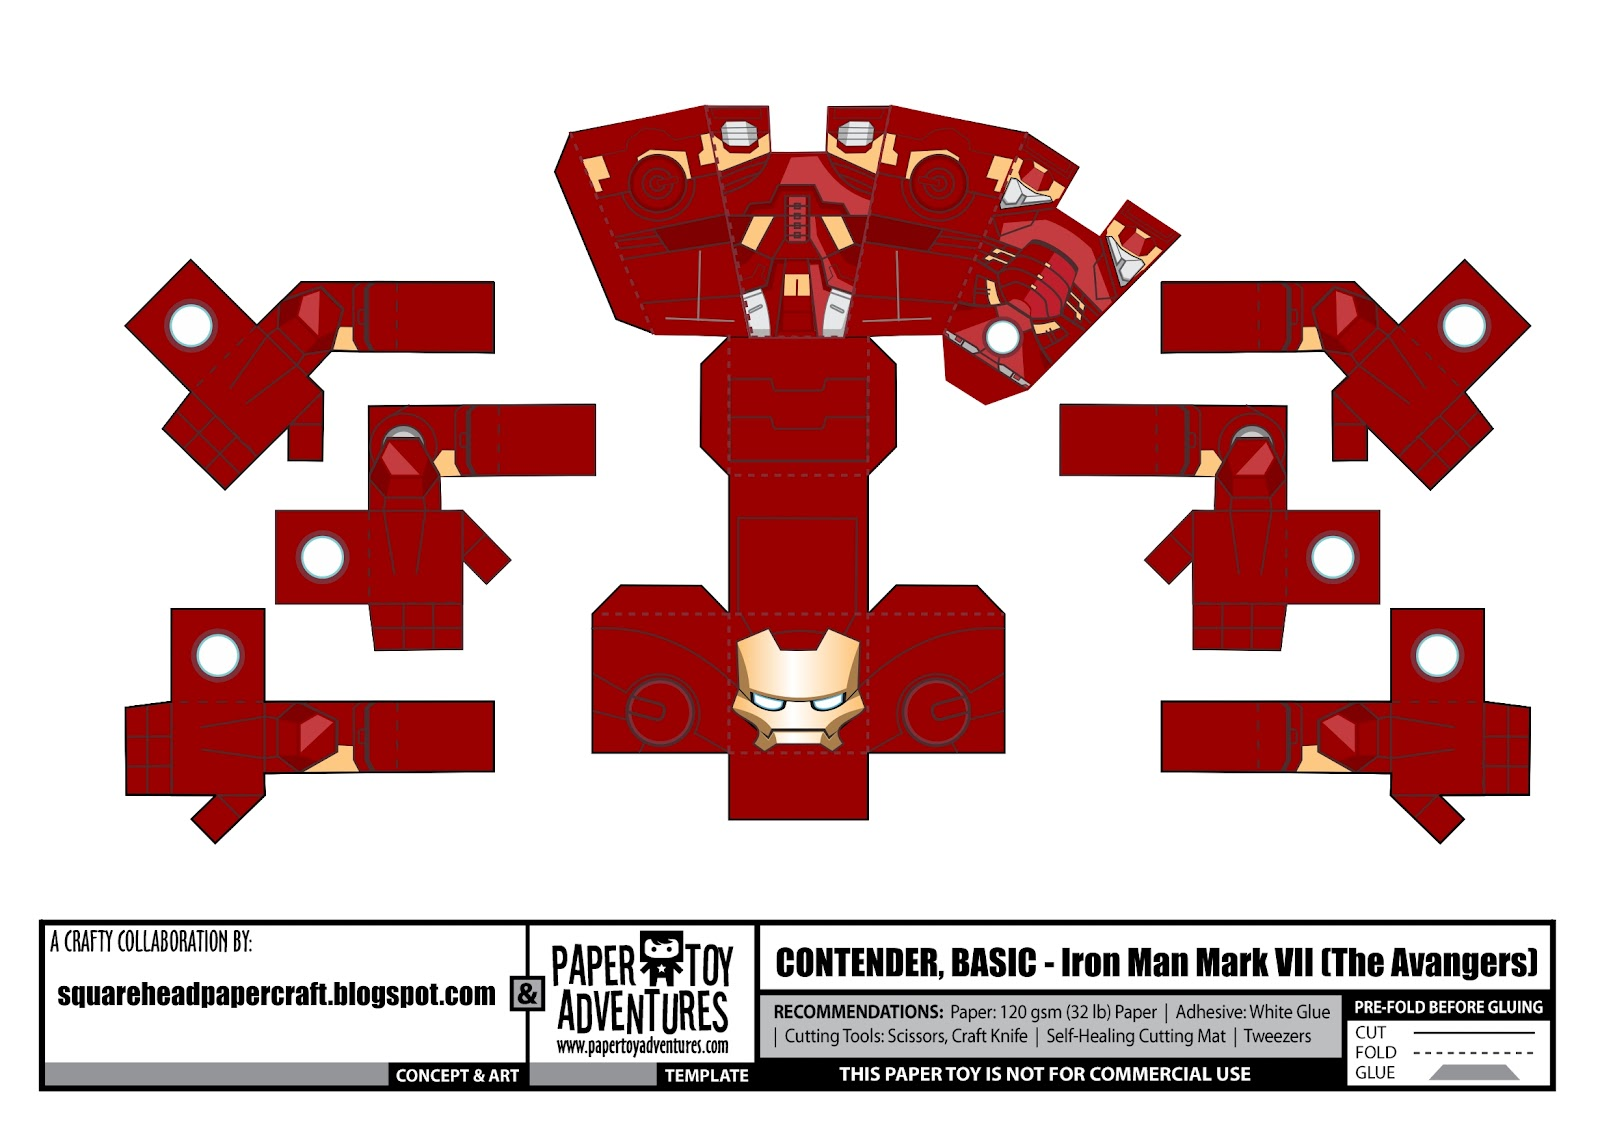 Square Head Papercraft Iron Man Mark Vii The Avengers